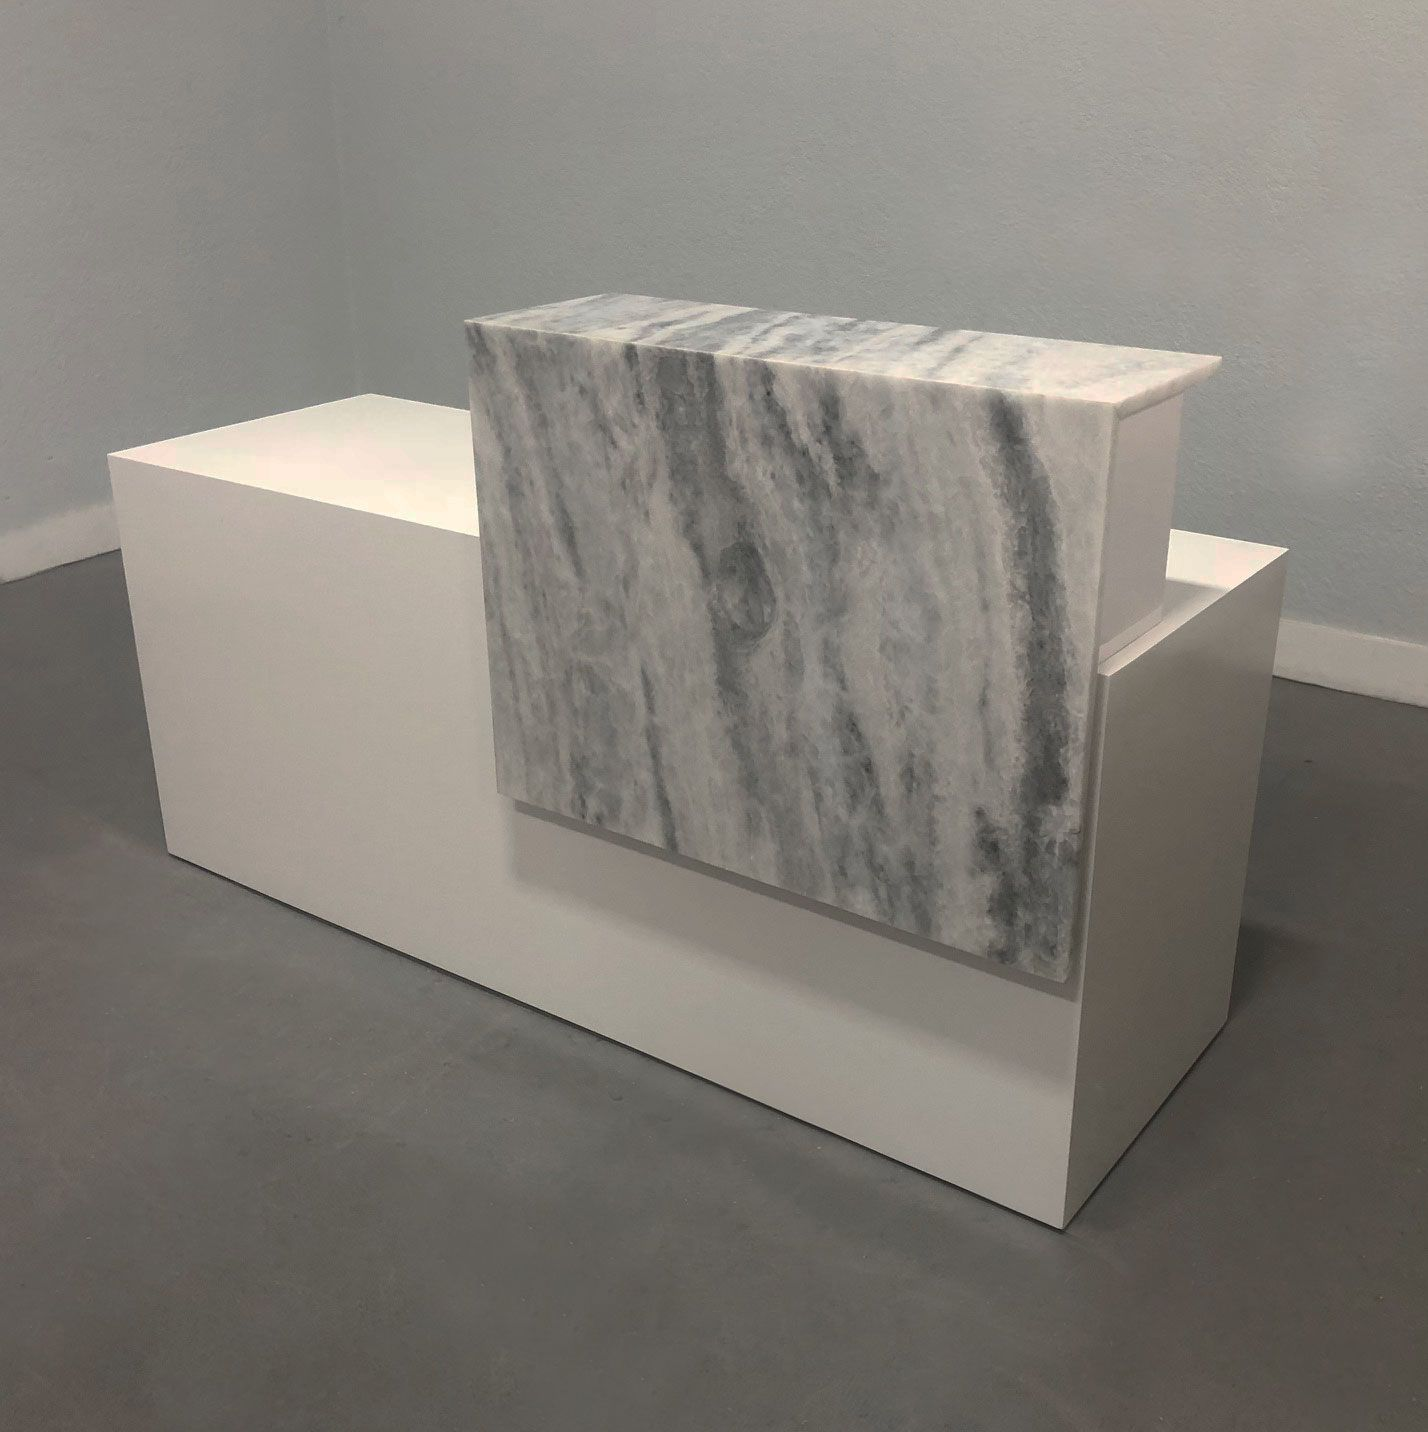 Custom Made Modern Reception Desk In White Lacquer And White Marble Counter Top Modern Reception Desk Modern White Reception Desk Reception Desk